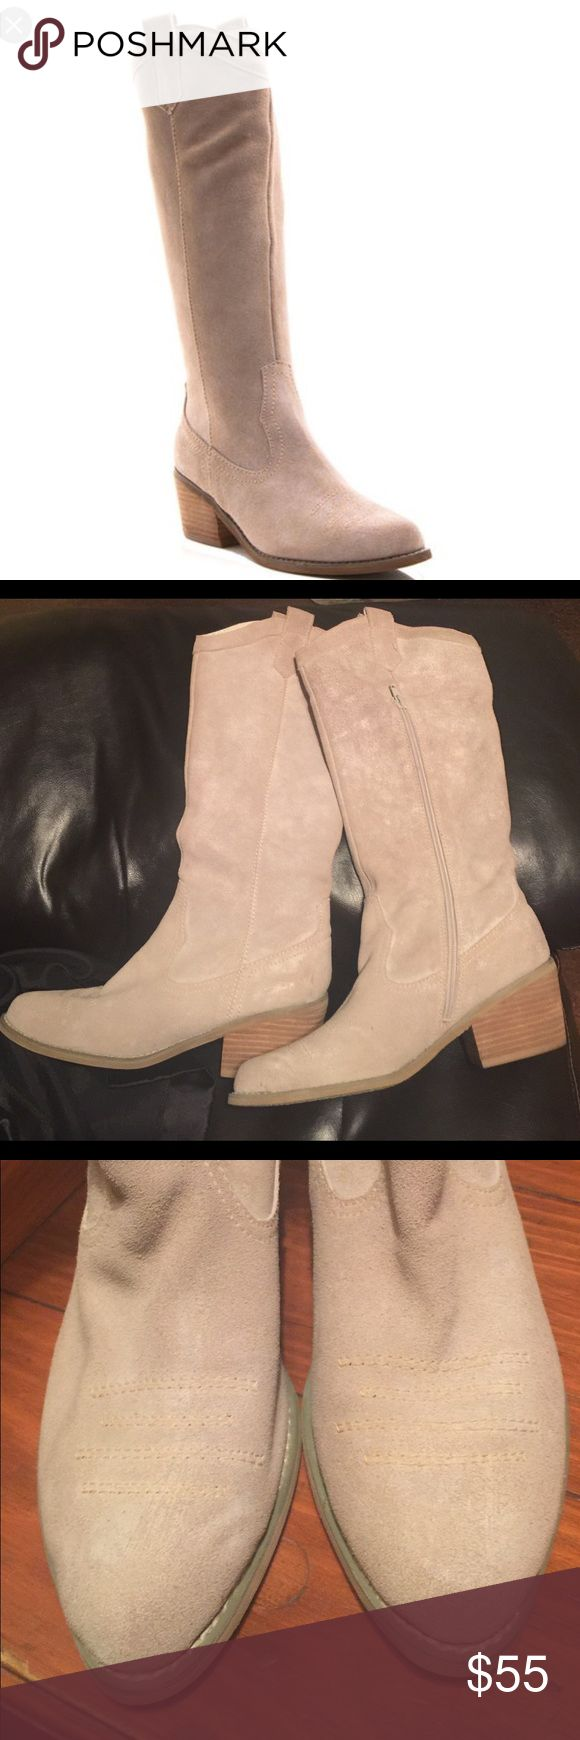 "Knee High Boots- NEW Envy brand ""Ride 'Em"" light tan/natural western style to the knee boots! Perfect neutral boot that can go with anything! Never worn. Will include original boot bag that came with the boots! envy Shoes Over the Knee Boots"